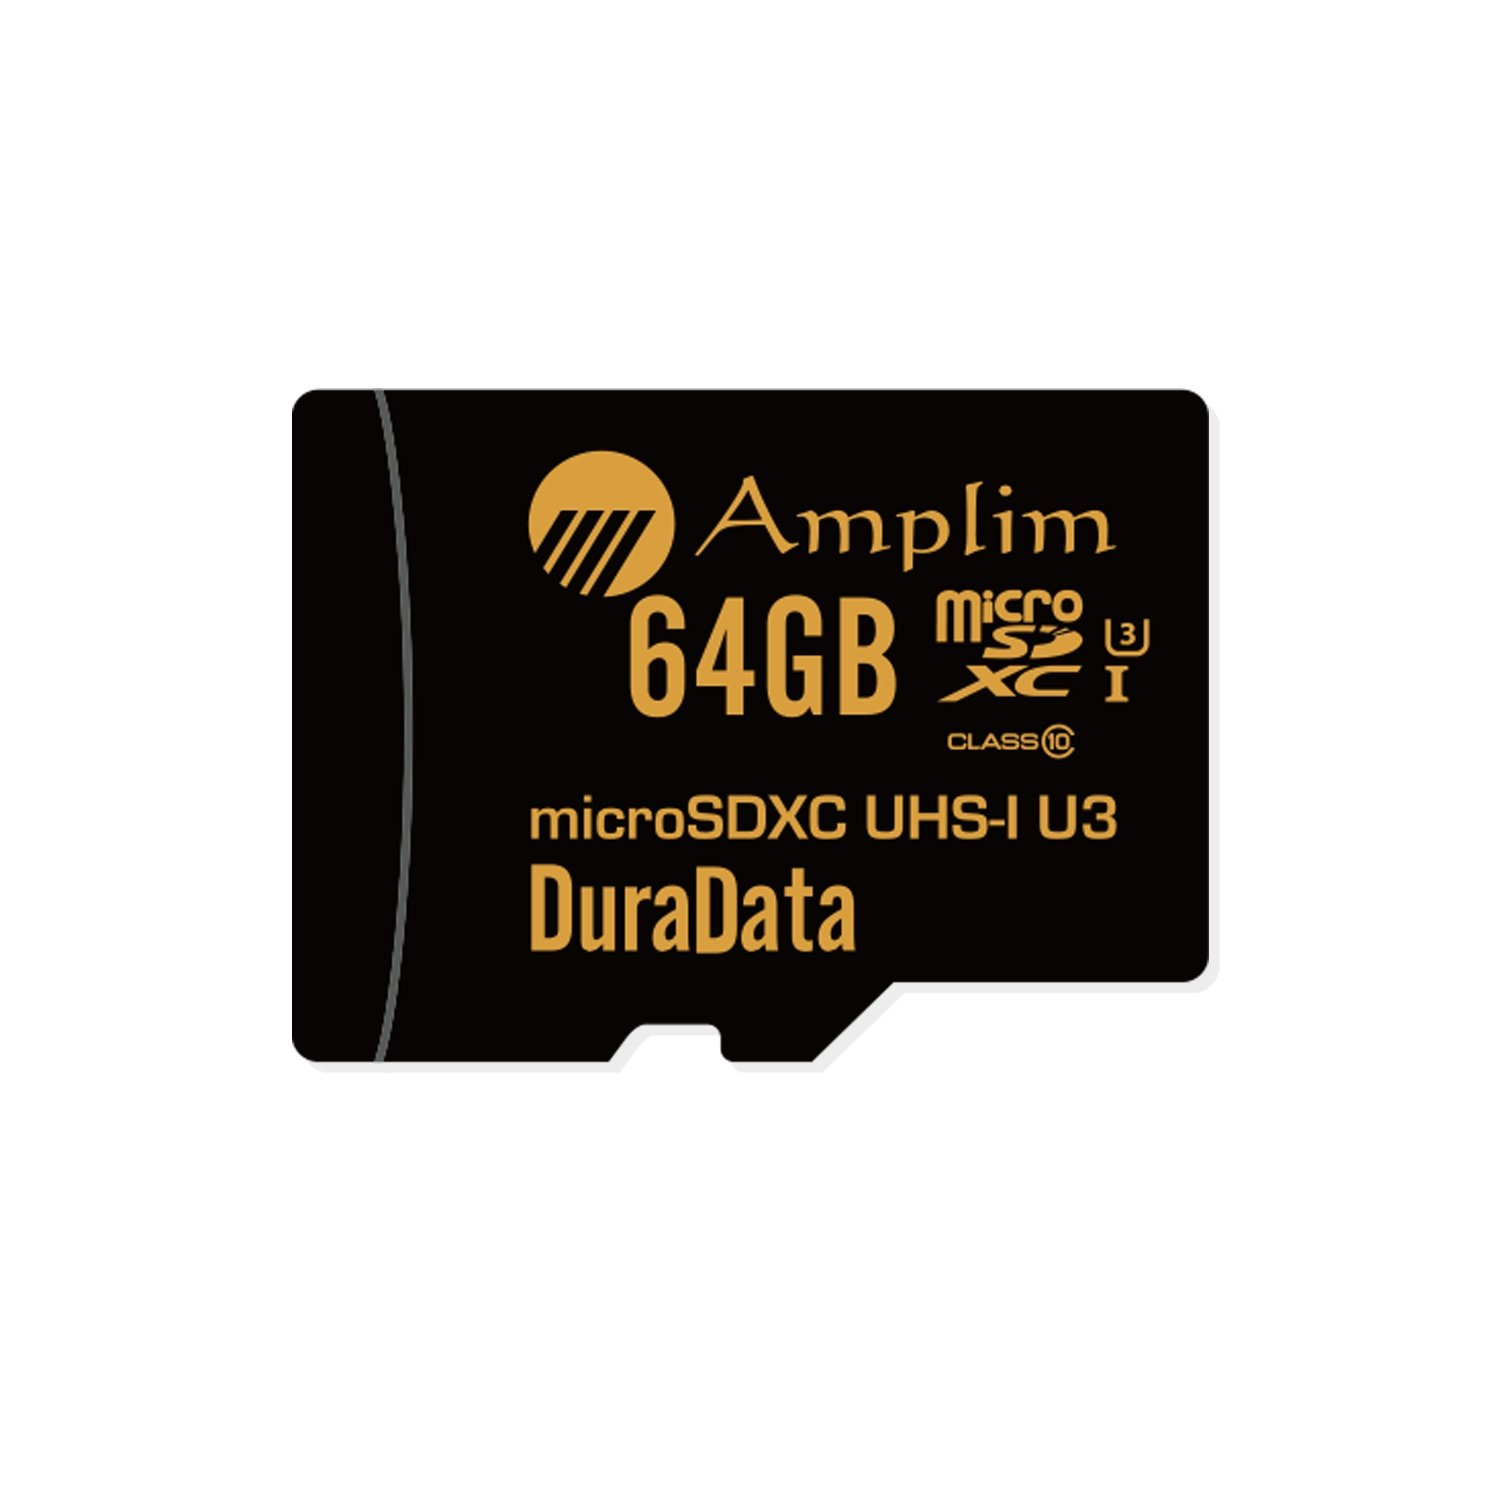 Amplim 64GB Micro SD SDXC V30 A1 Memory Card Plus Adapter Pack (Class 10 U3 UHS-I MicroSD XC Extreme Pro) 64 GB Ultra High Speed 667X 100MB/s UHS-1 TF MicroSDXC 4K Flash - Cell Phone, Drone, Camera by Amplim (Image #6)